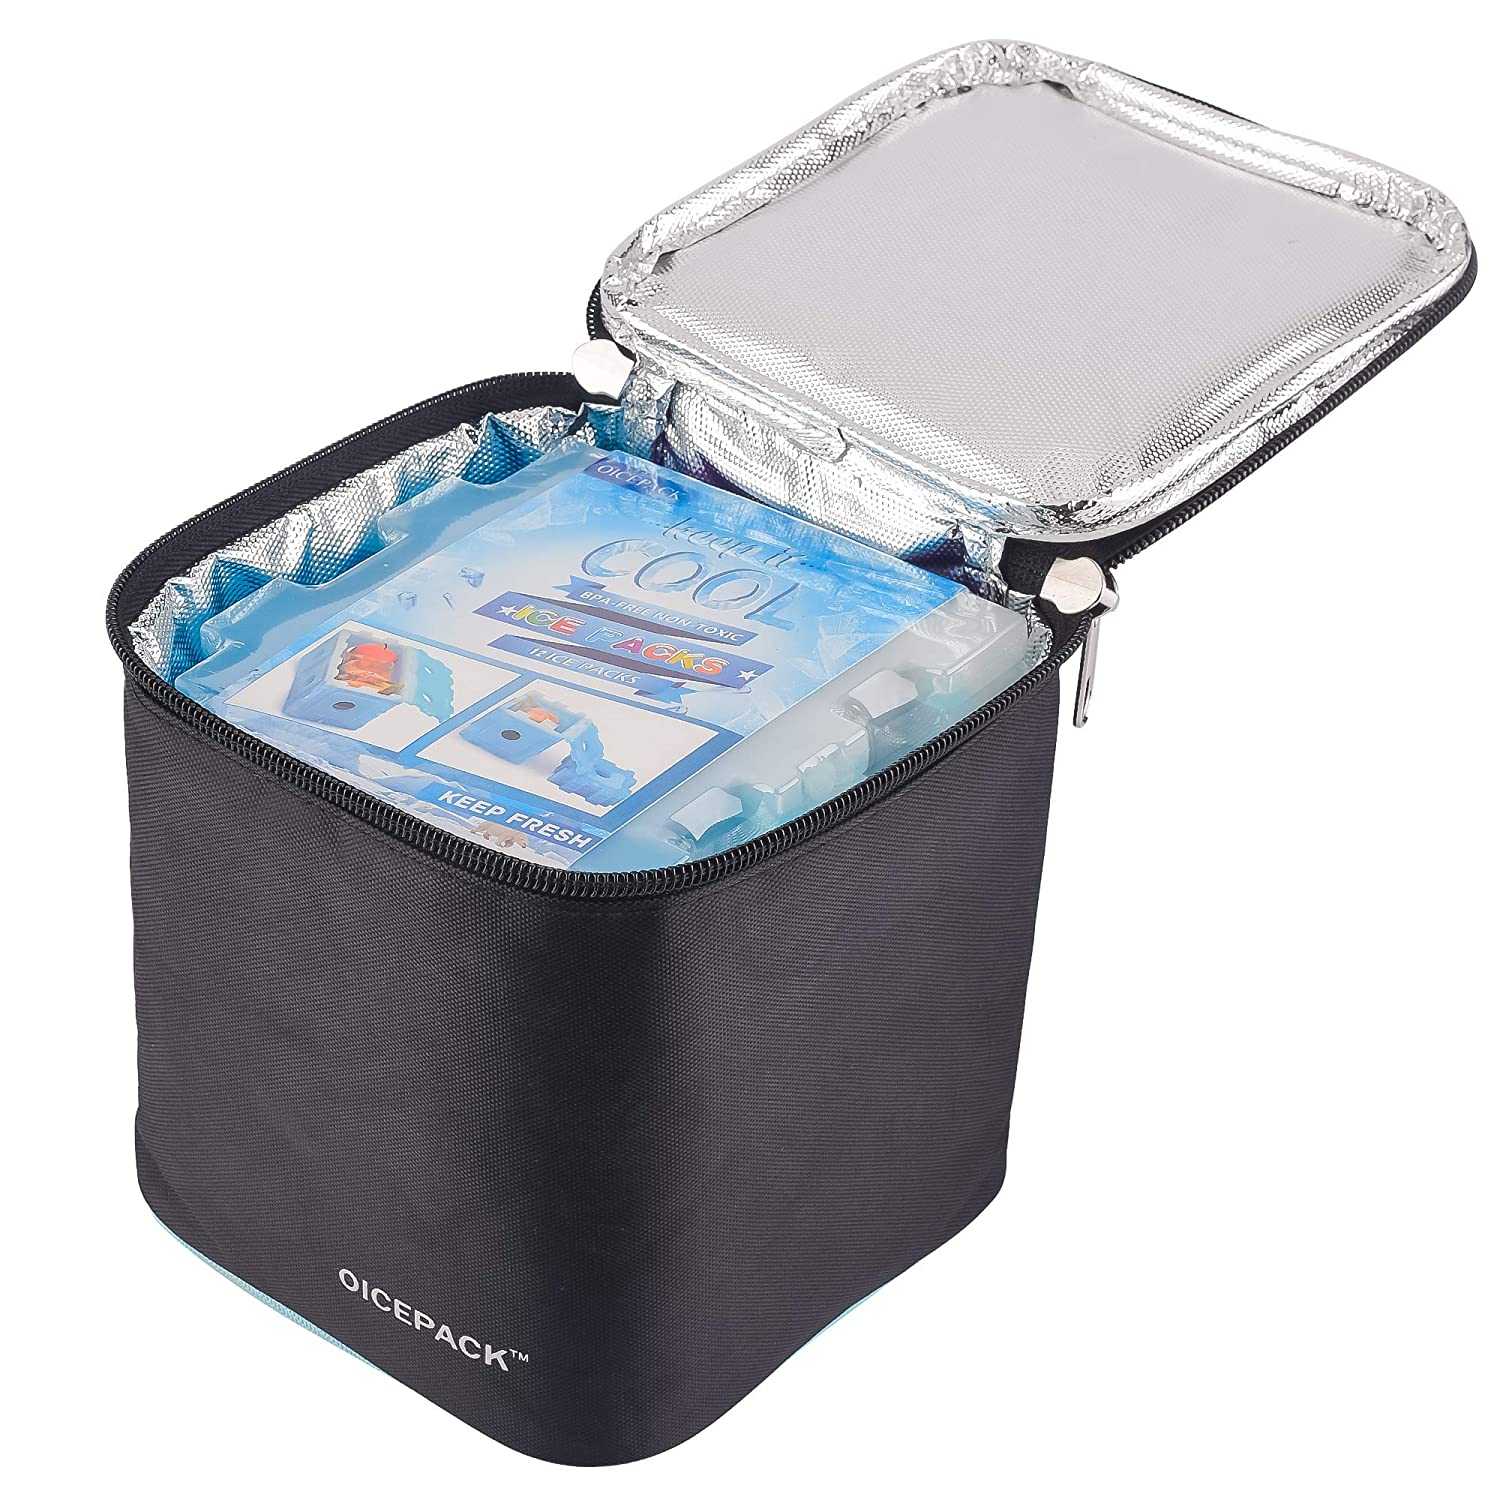 OICEPACK Ice Packs Cool Pack for Lunch Box Stackable Freezer Packs for Lunch Bags Gel Ice Packs with Slim Design Fit all Kinds of Coolers and Lunch Totes Super Value Sets 4PCS